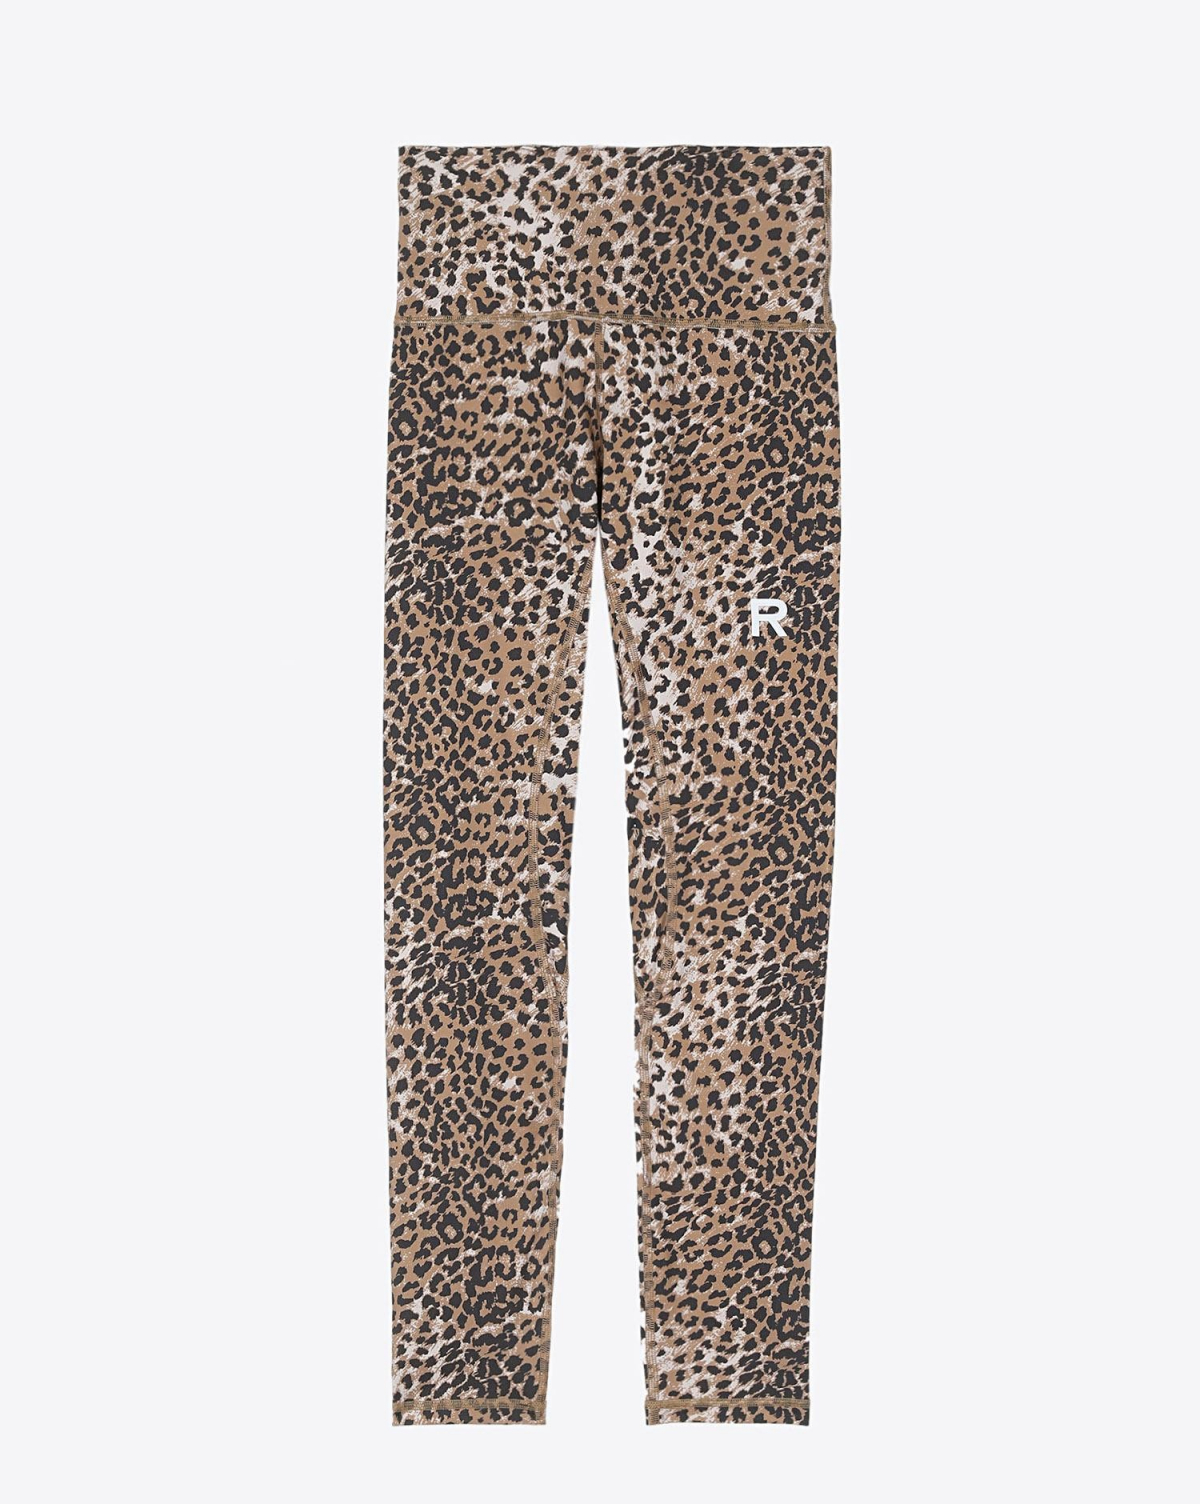 Ragdoll LA Work Out Leggings - Brown Leopard